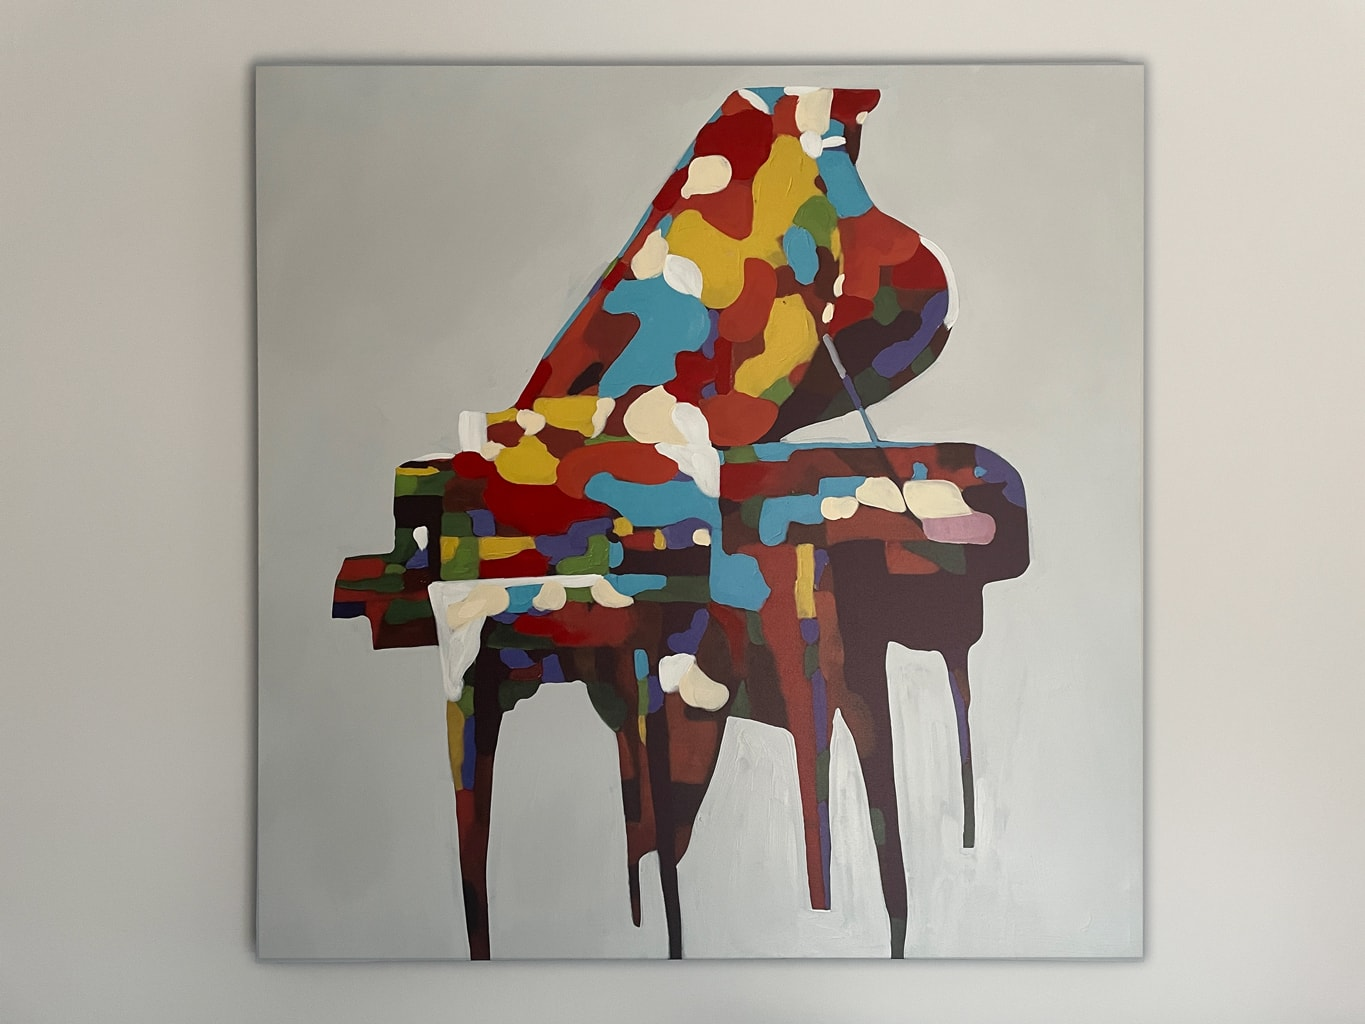 Piano Abstract Painting in Colour on Canvas